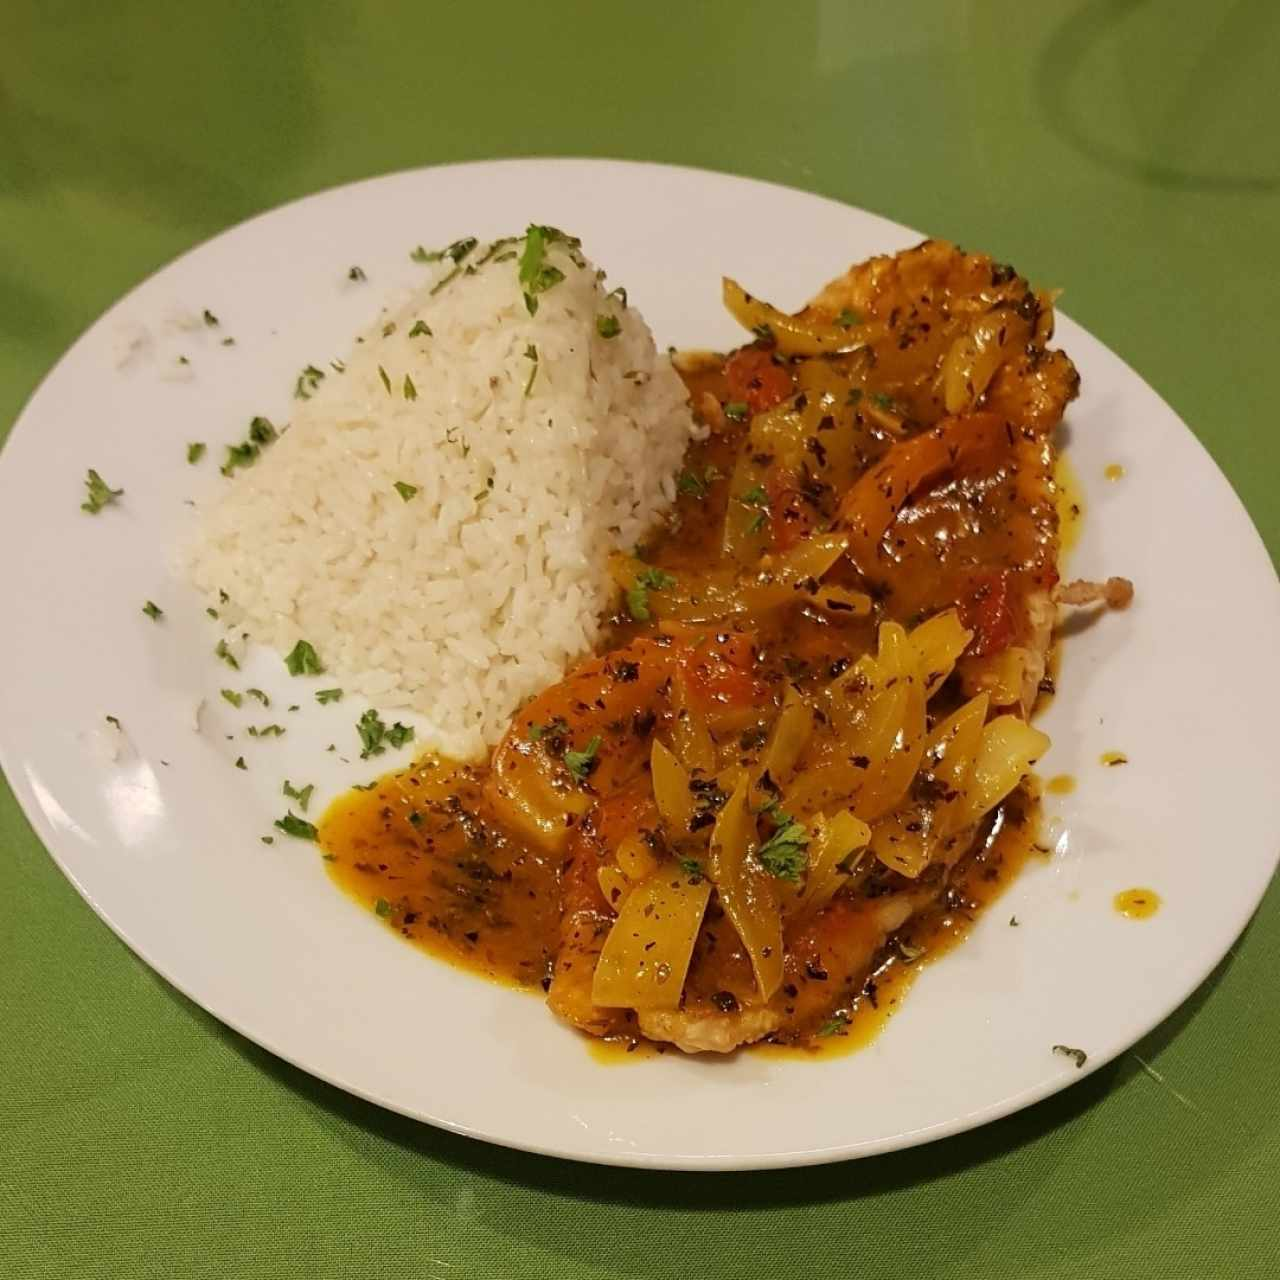 Corvina a la chorrillana con arroz blanco.